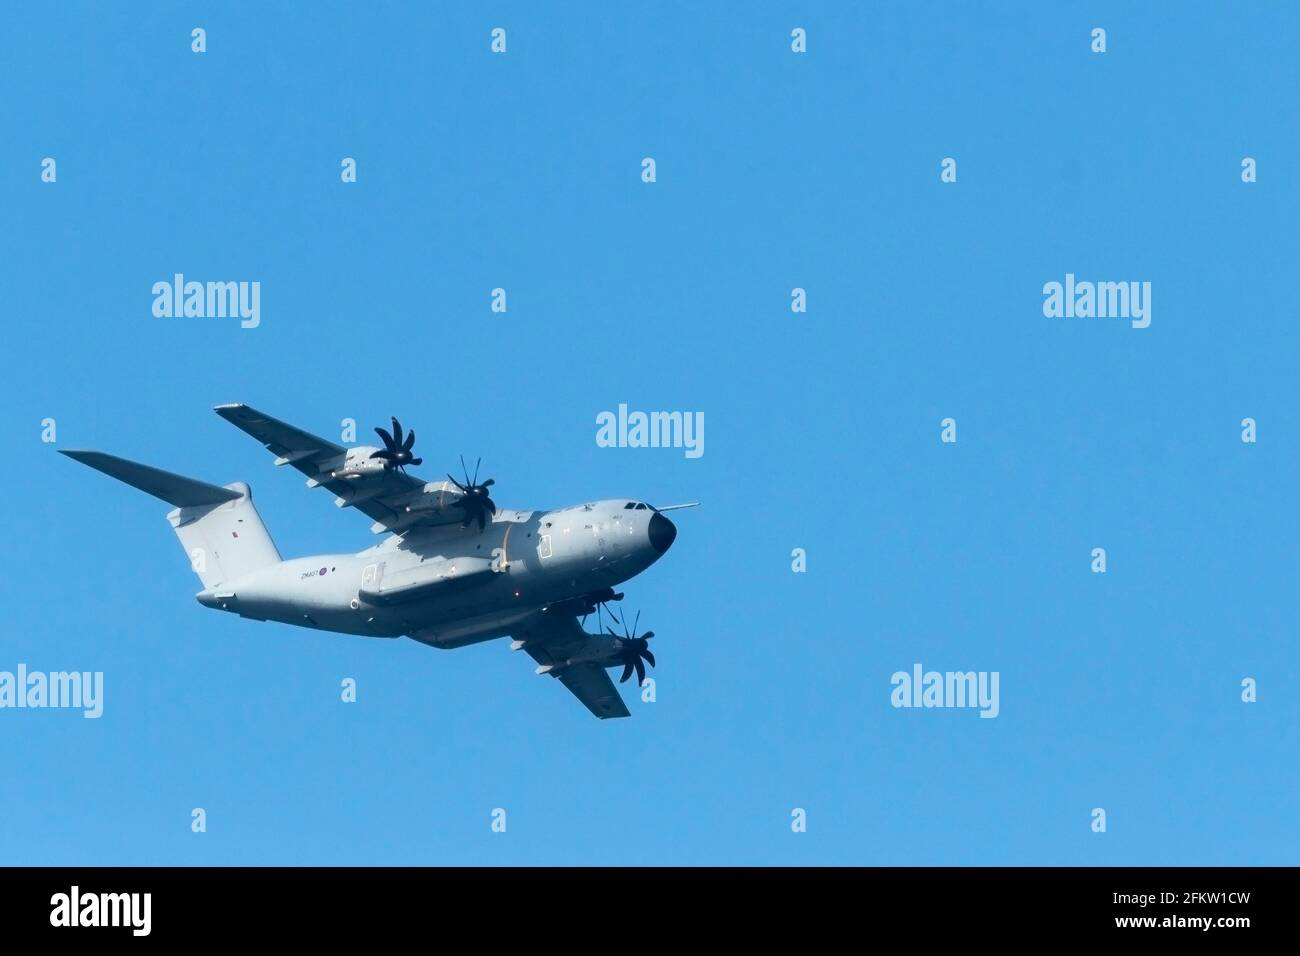 An RAF Airbus A400M Atlas C.1 Transport aircraft flying overhead. Stock Photo